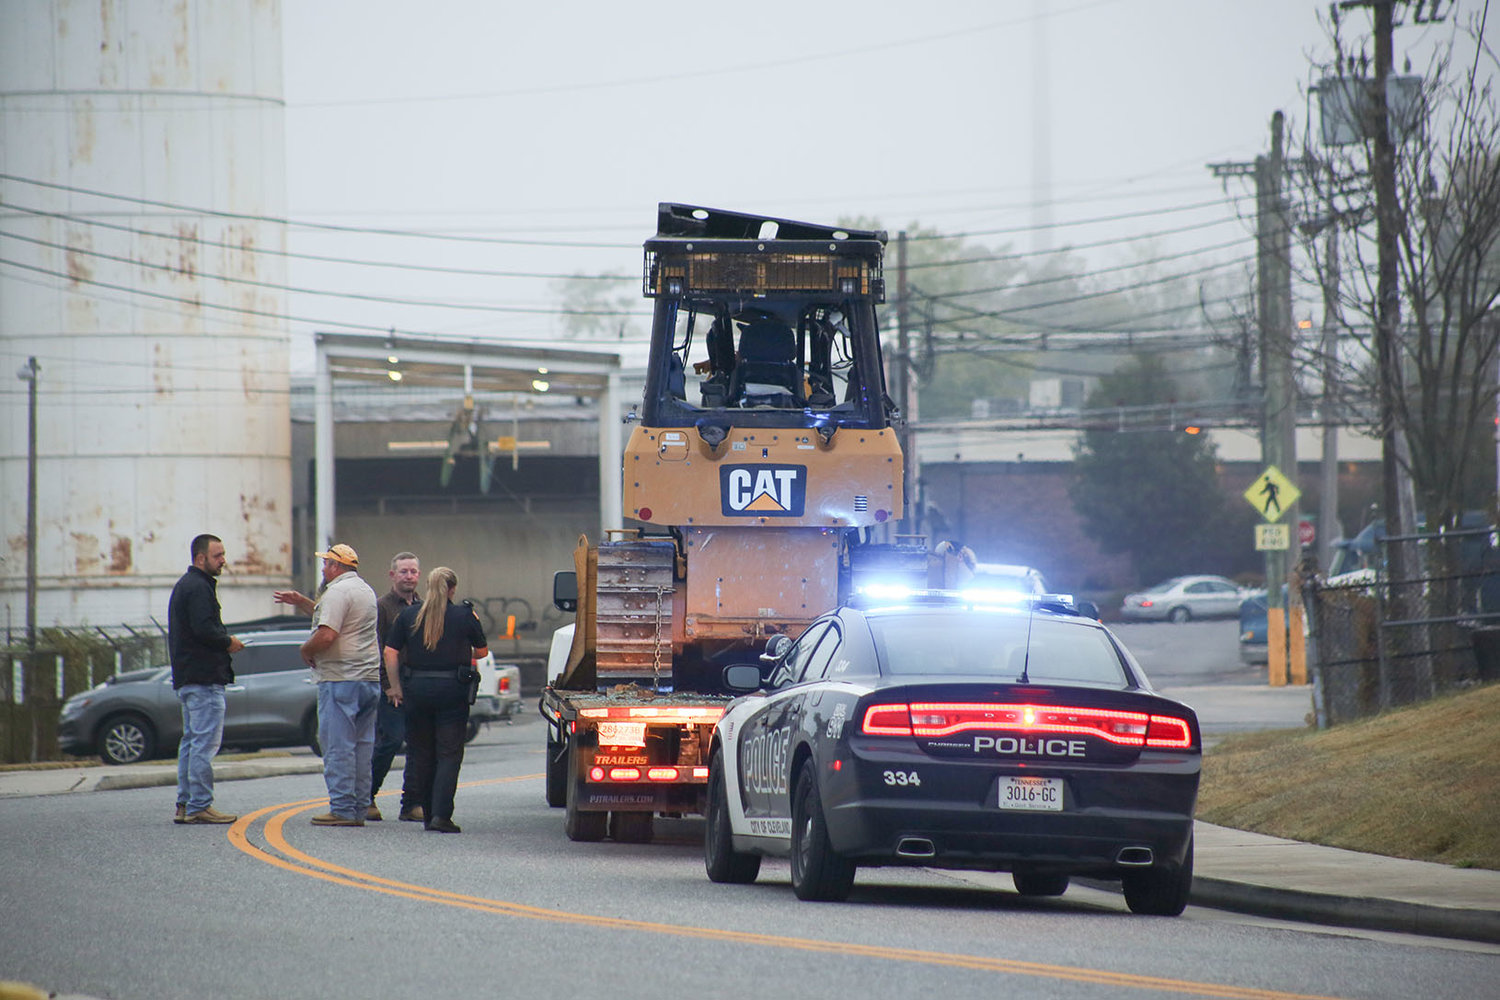 A BACKHOE hauled by a truck was damaged after crashing into the Inman Street railroad bridge/underpass Monday morning. The incident temporarily closed Inman Street during morning rush hour.